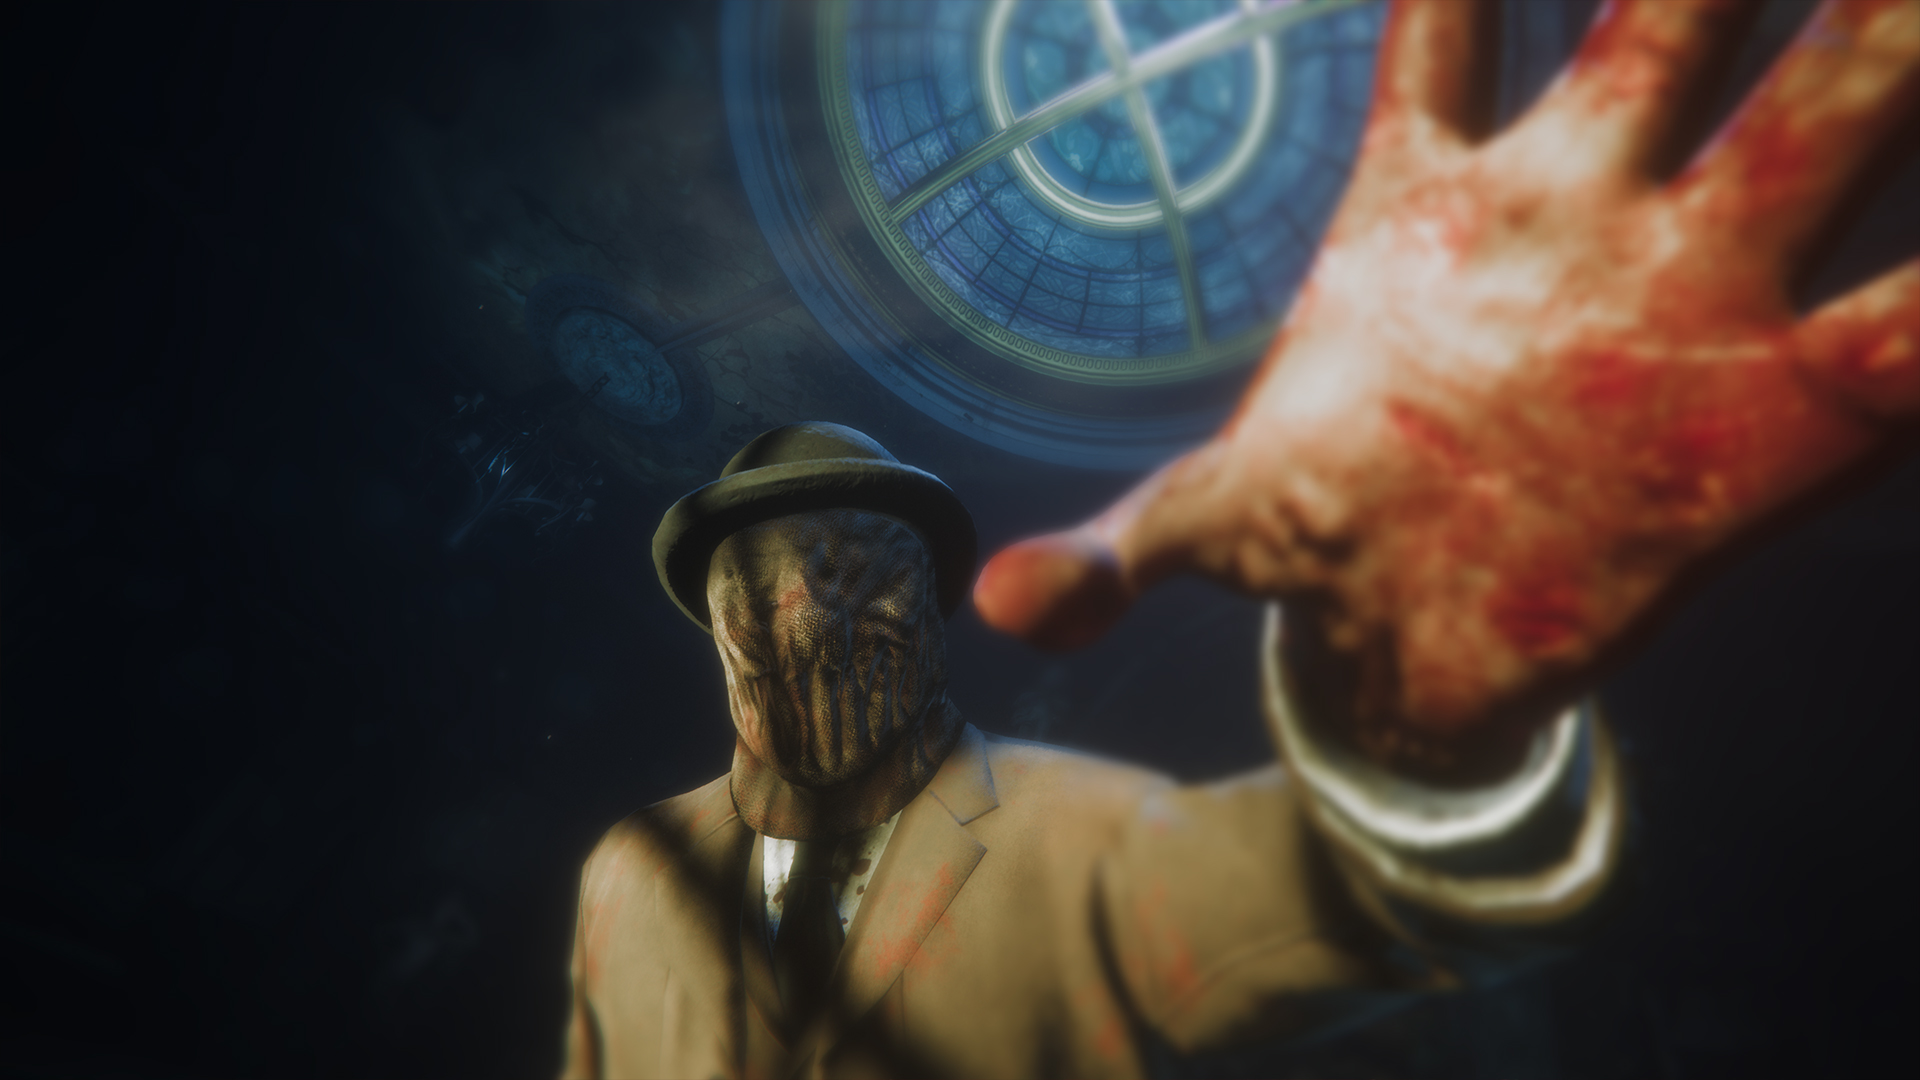 A masked man reaching towards the camera, splattered with blood.